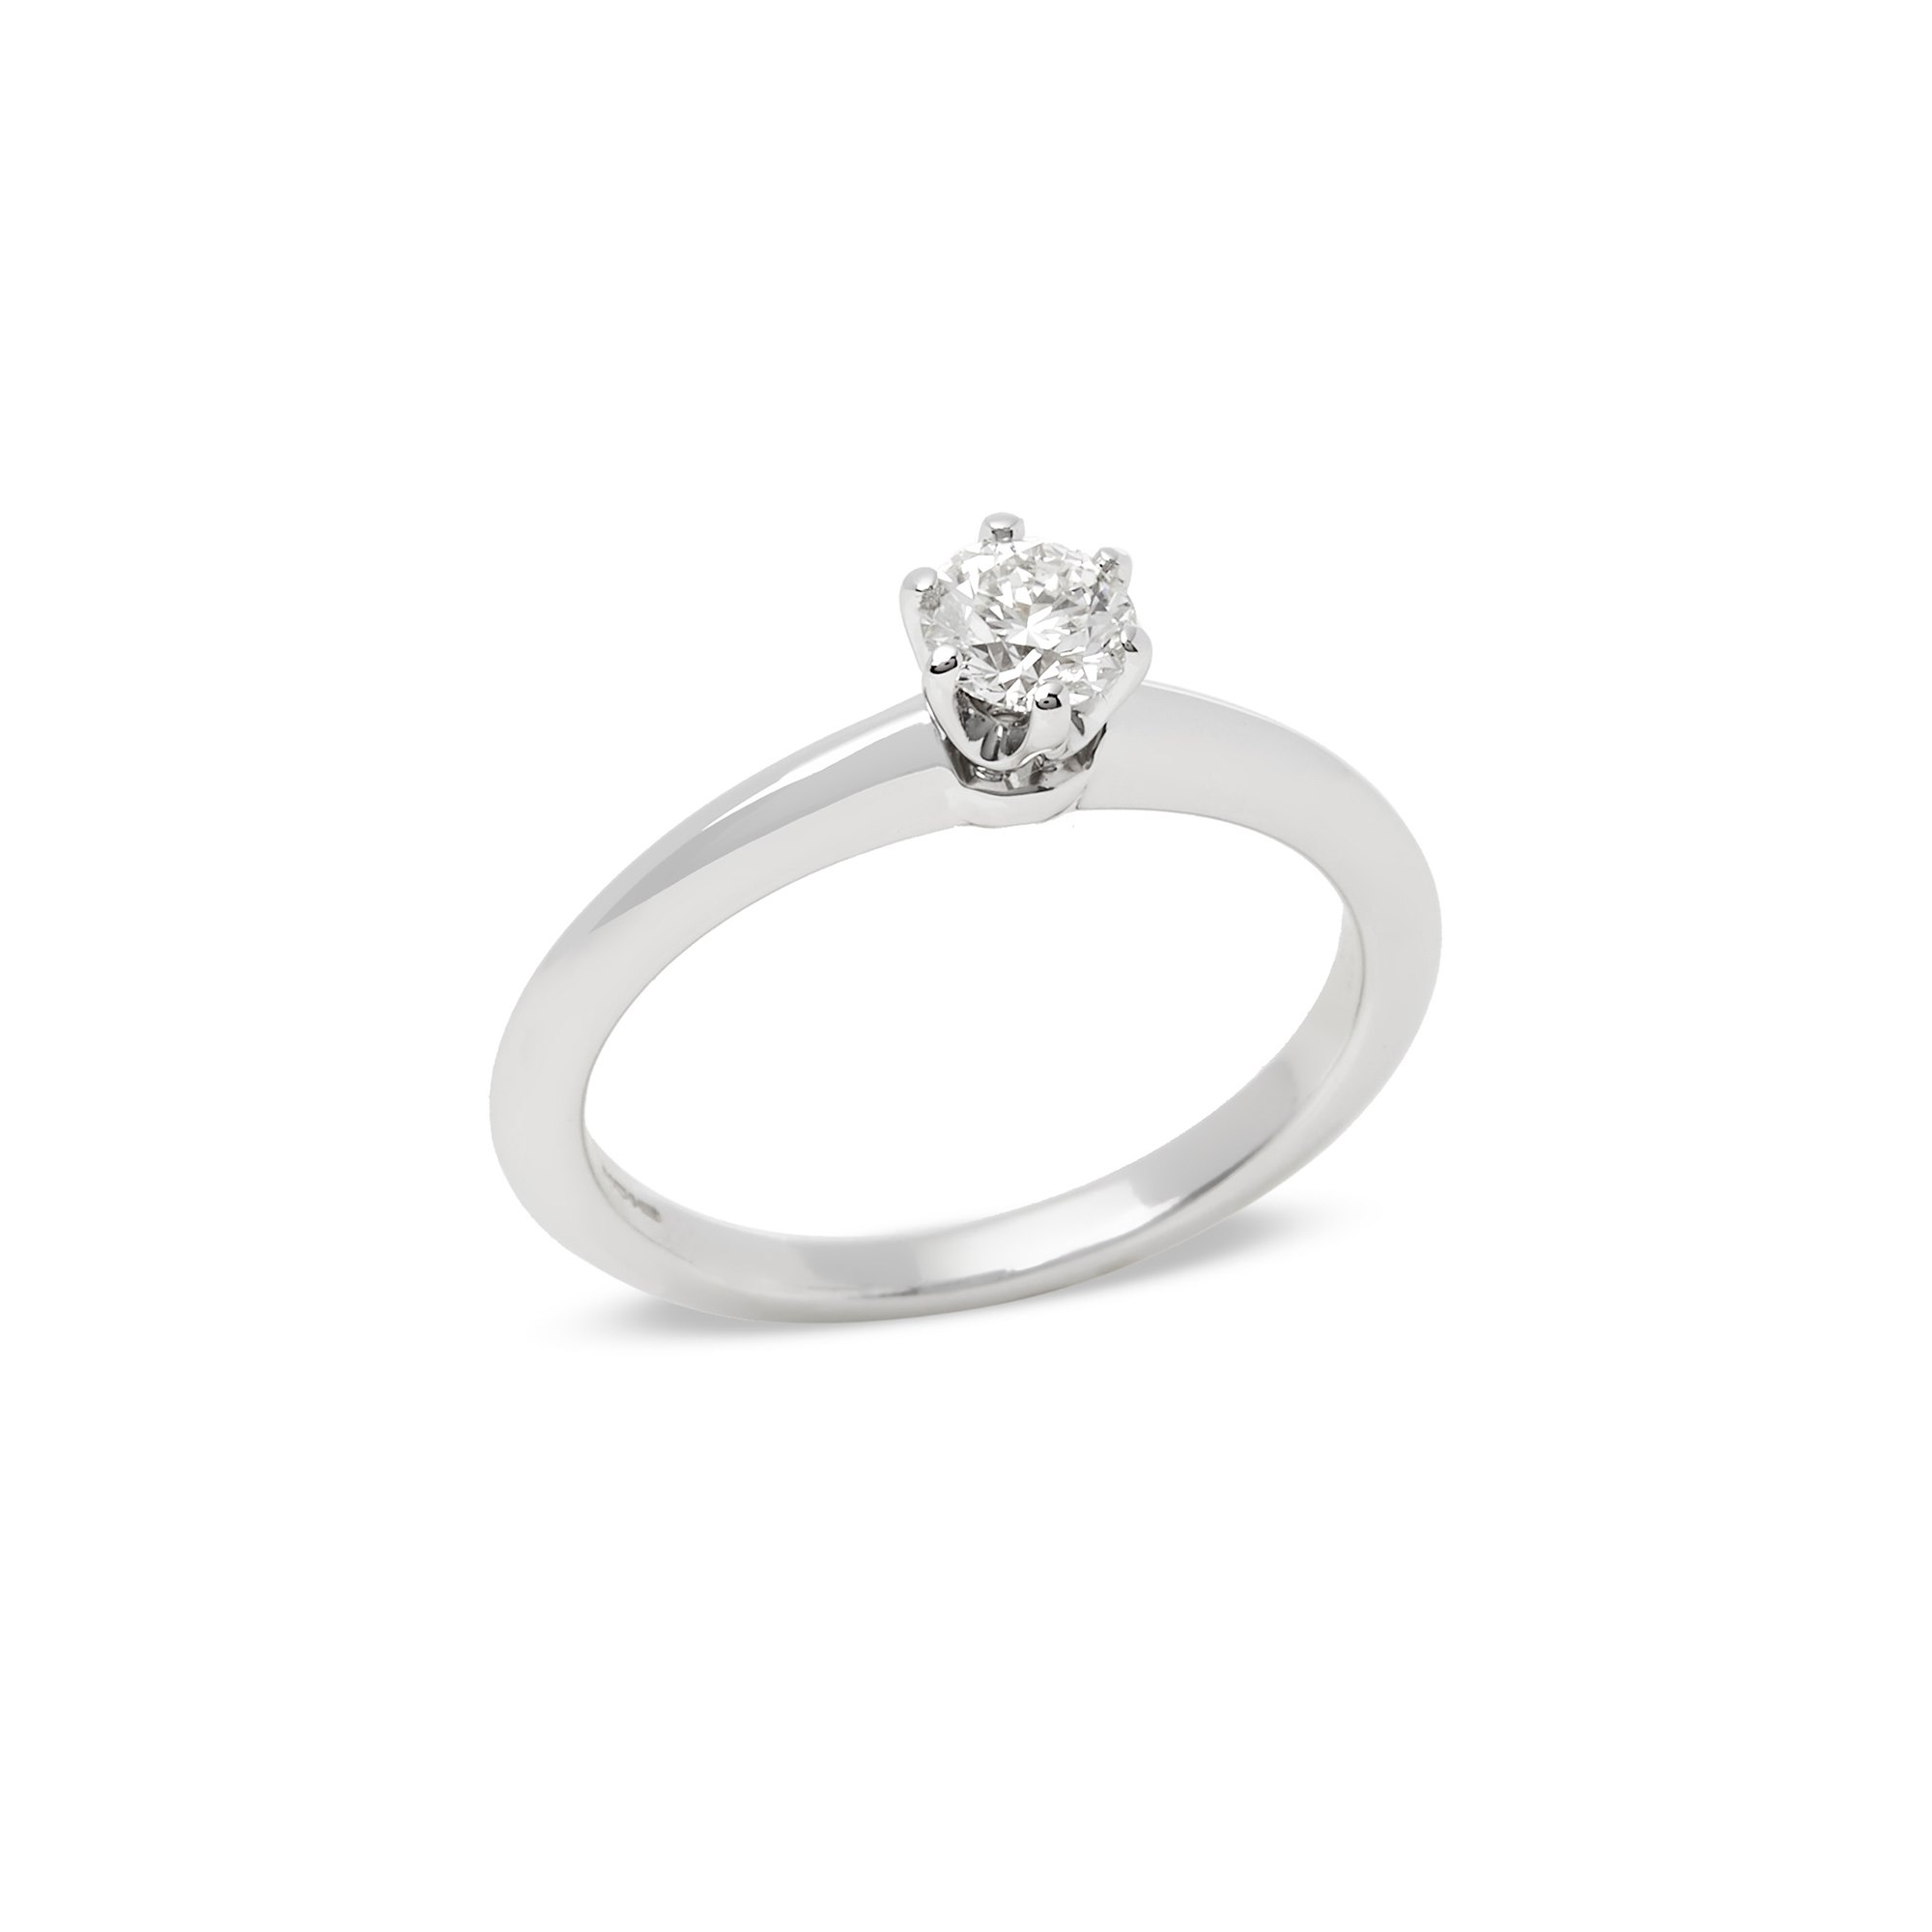 Tiffany & Co. Platinum 0.30ct Round Brilliant Cut Diamond Solitaire Ring